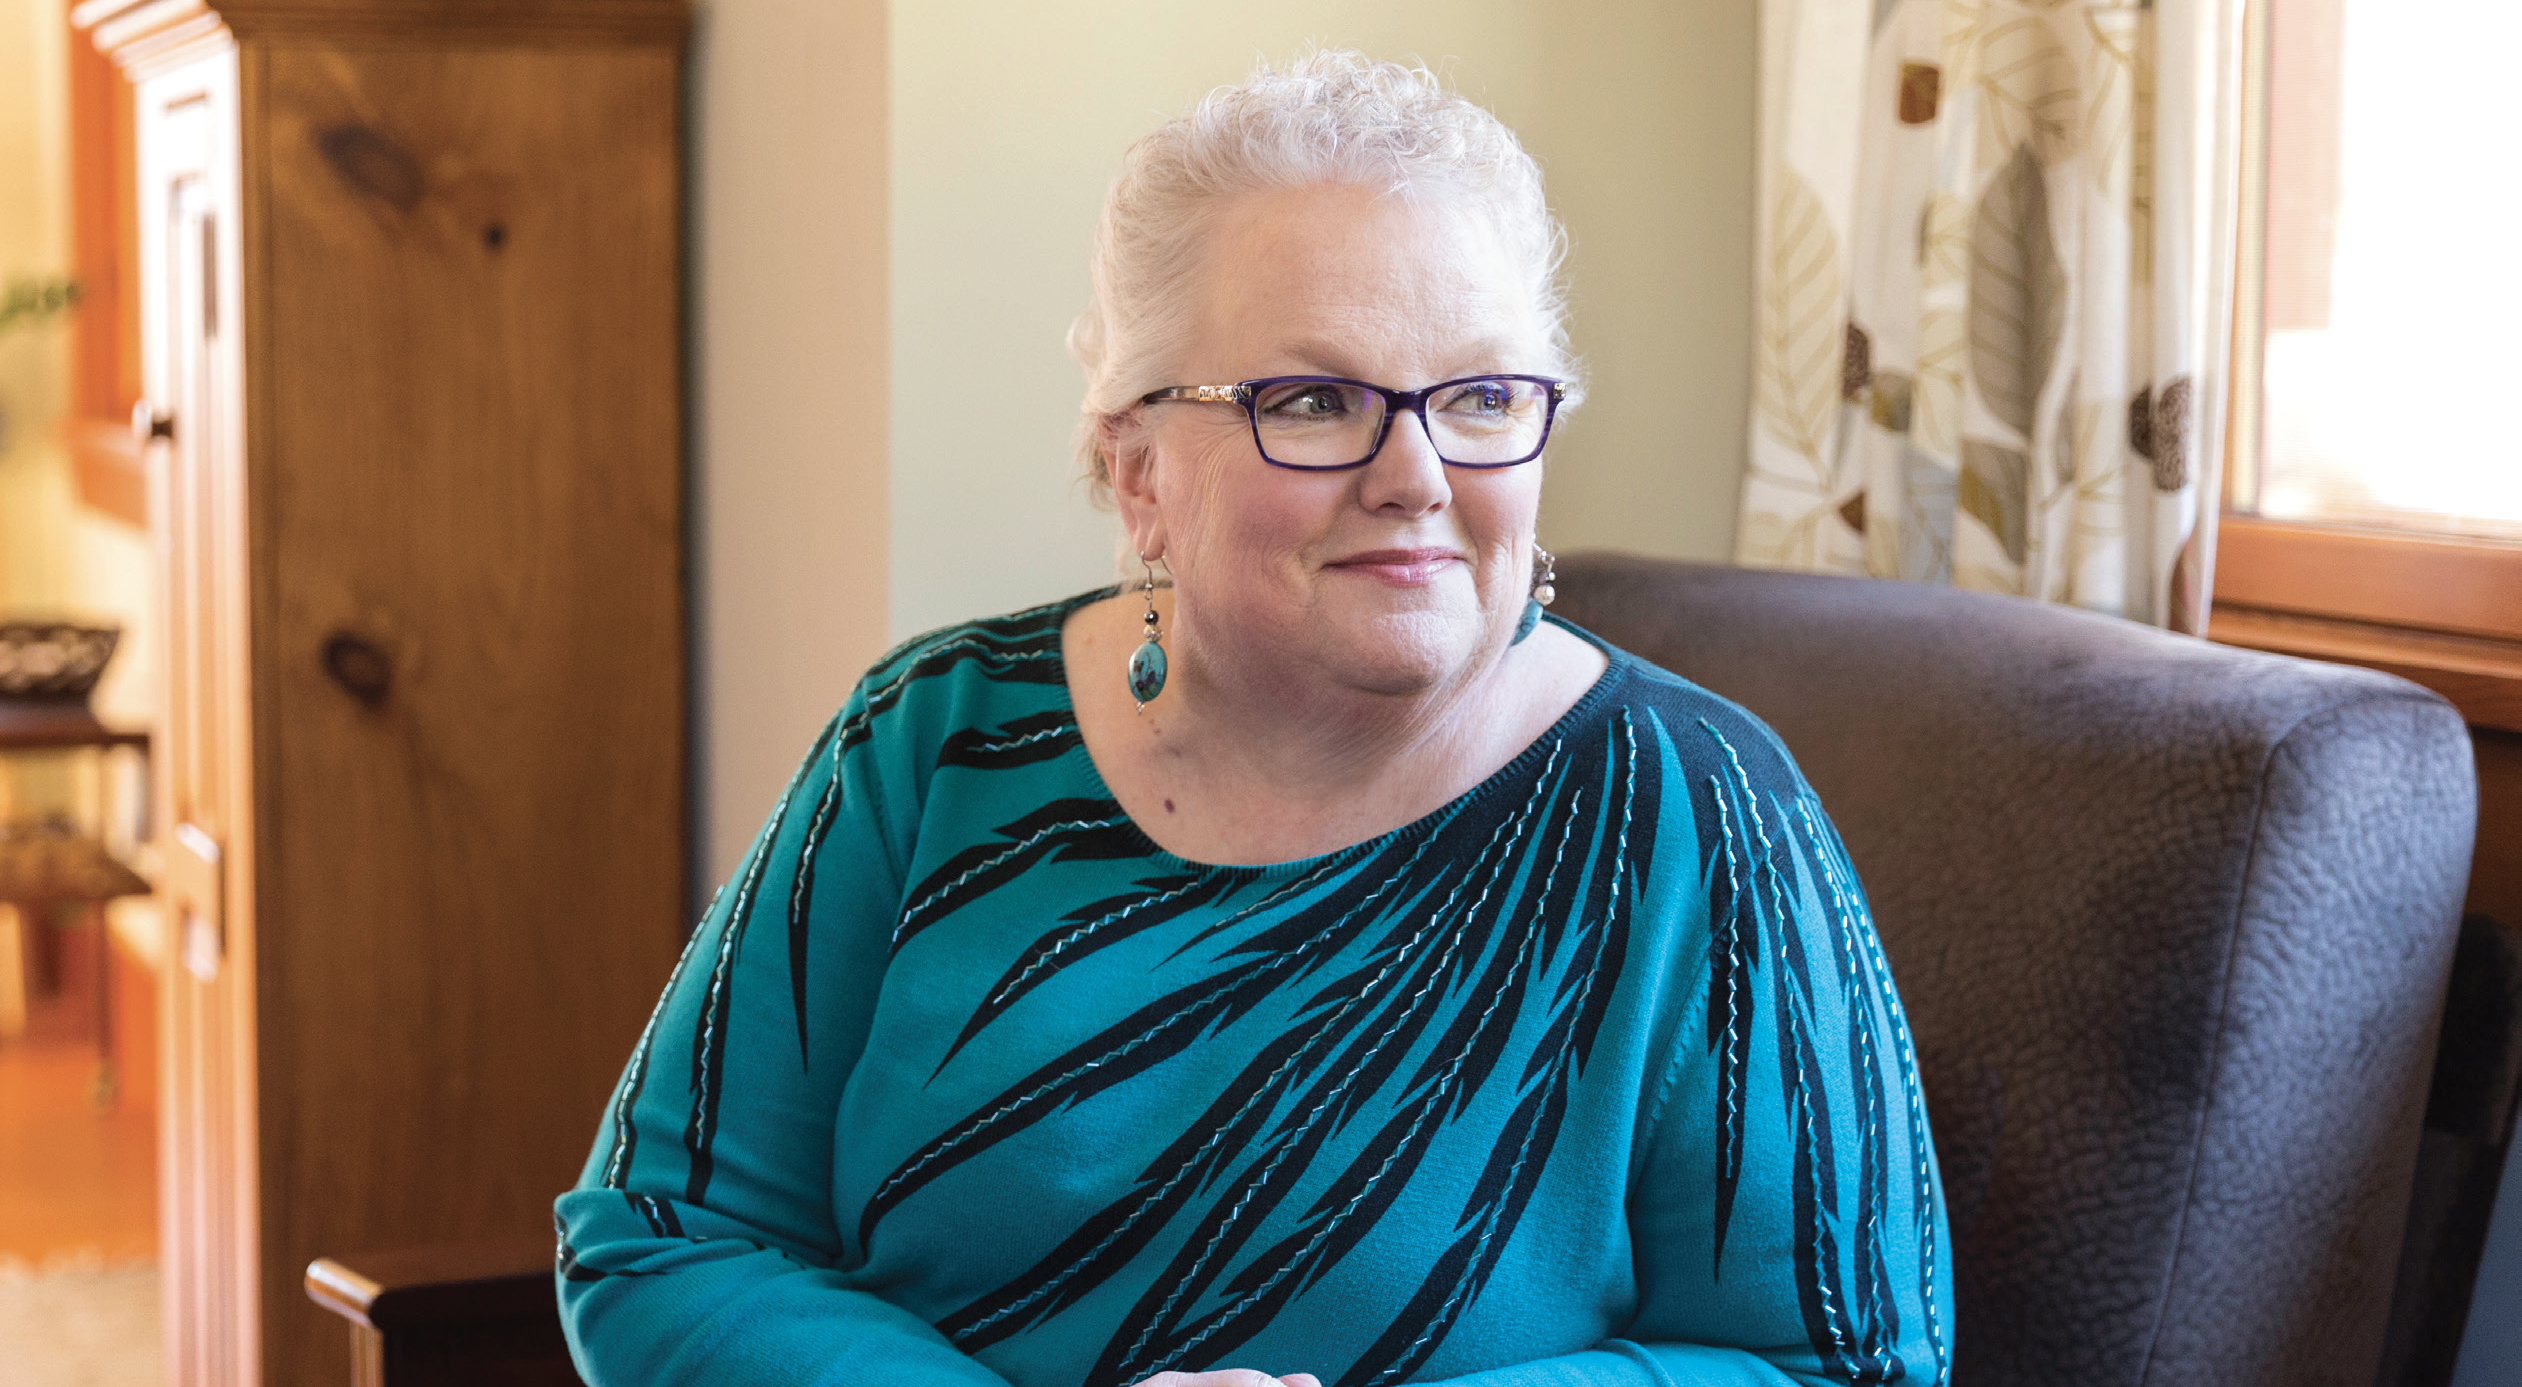 SUSAN BALDRIDGE has no evidence of disease, but still experiences side effects of chemotherapy. - PHOTO BY TAMZIN SMITH